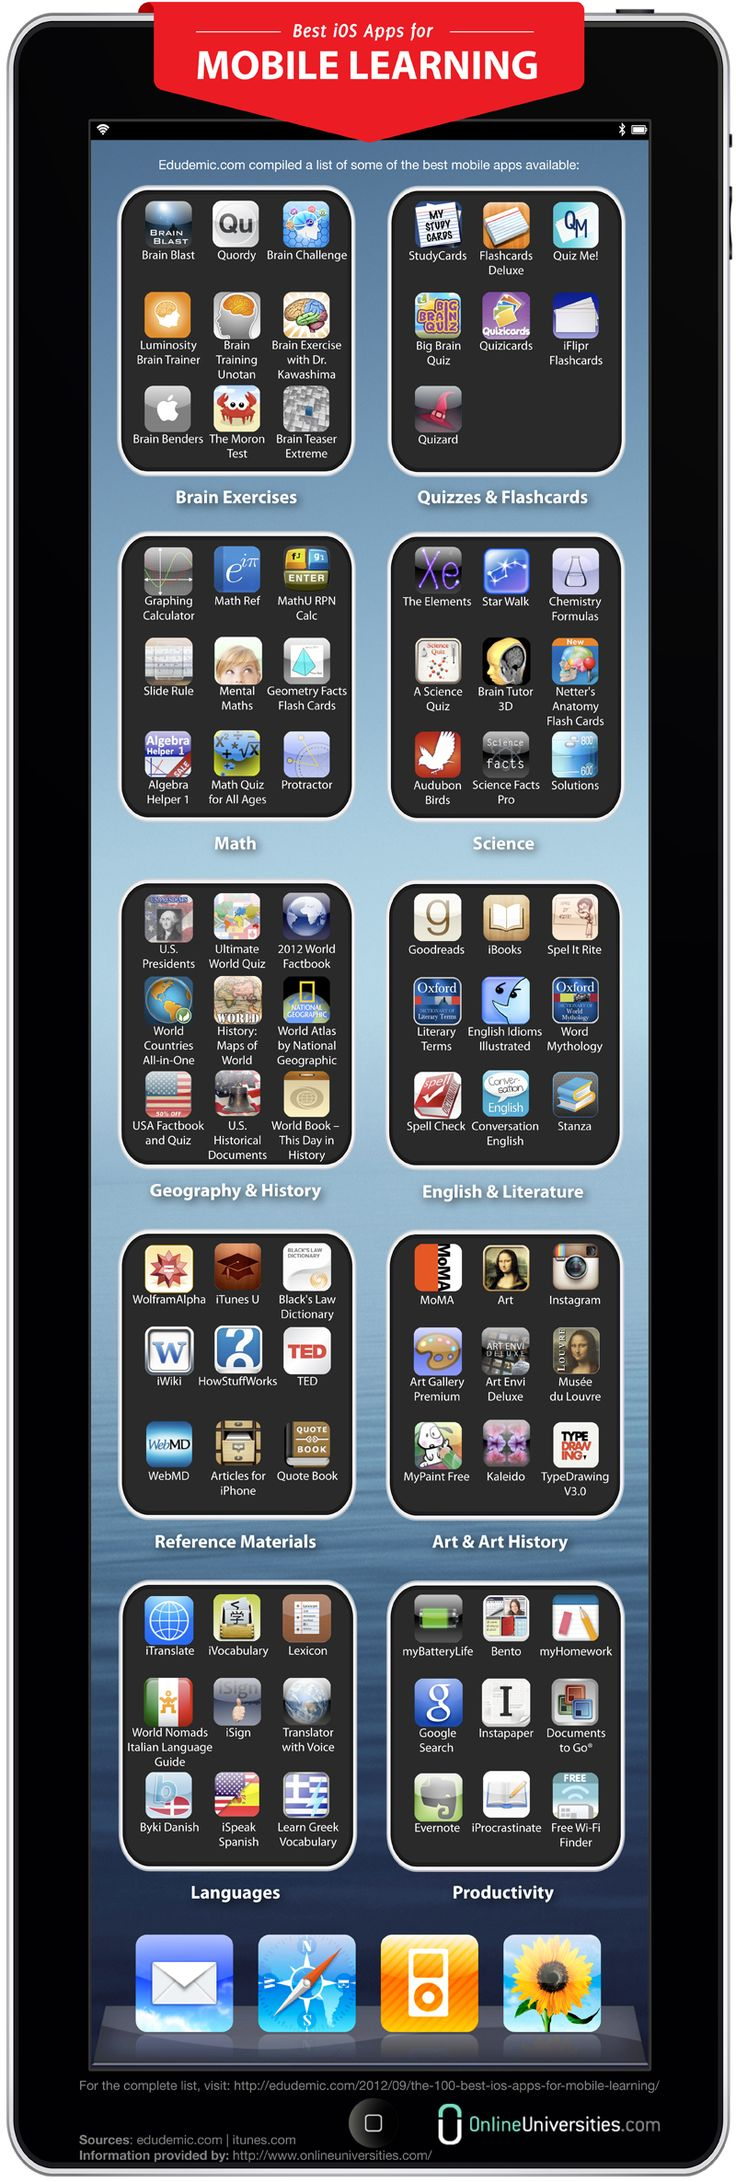 Best iOS Apps for Mobile Learning » Online Universities